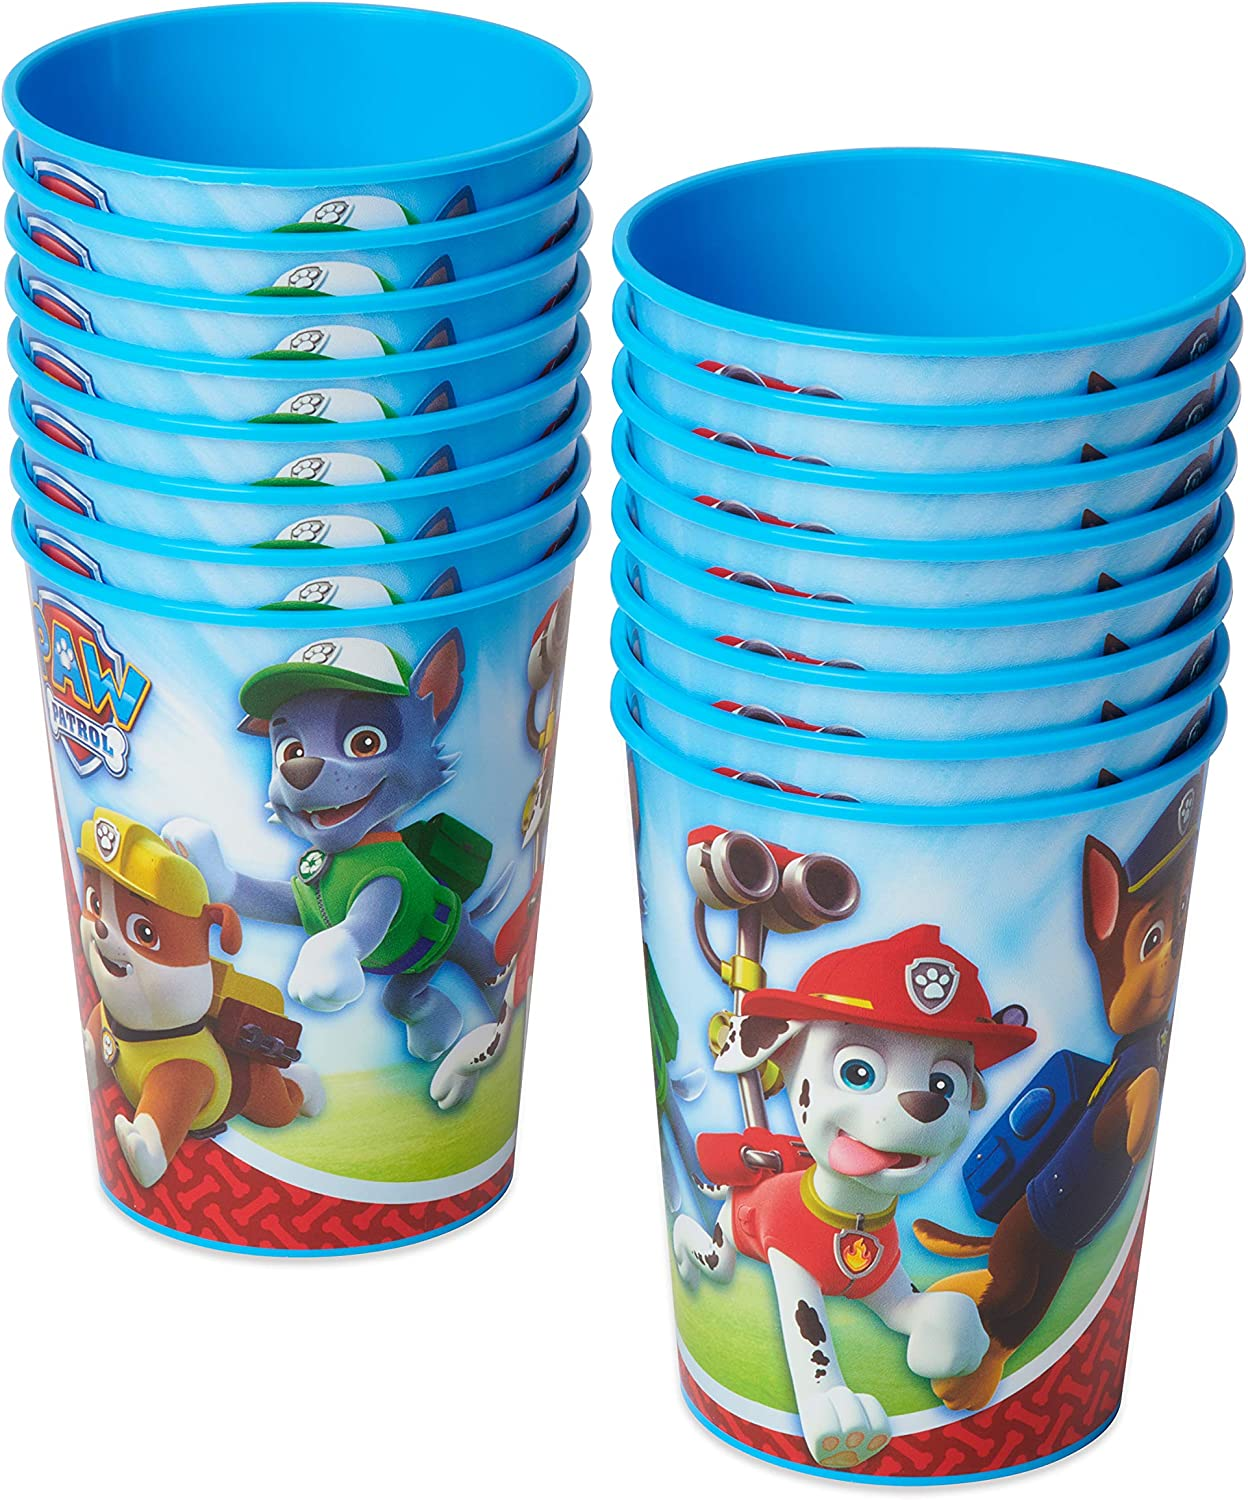 3-Count Table Cover American Greetings Paw Patrol Party Supplies